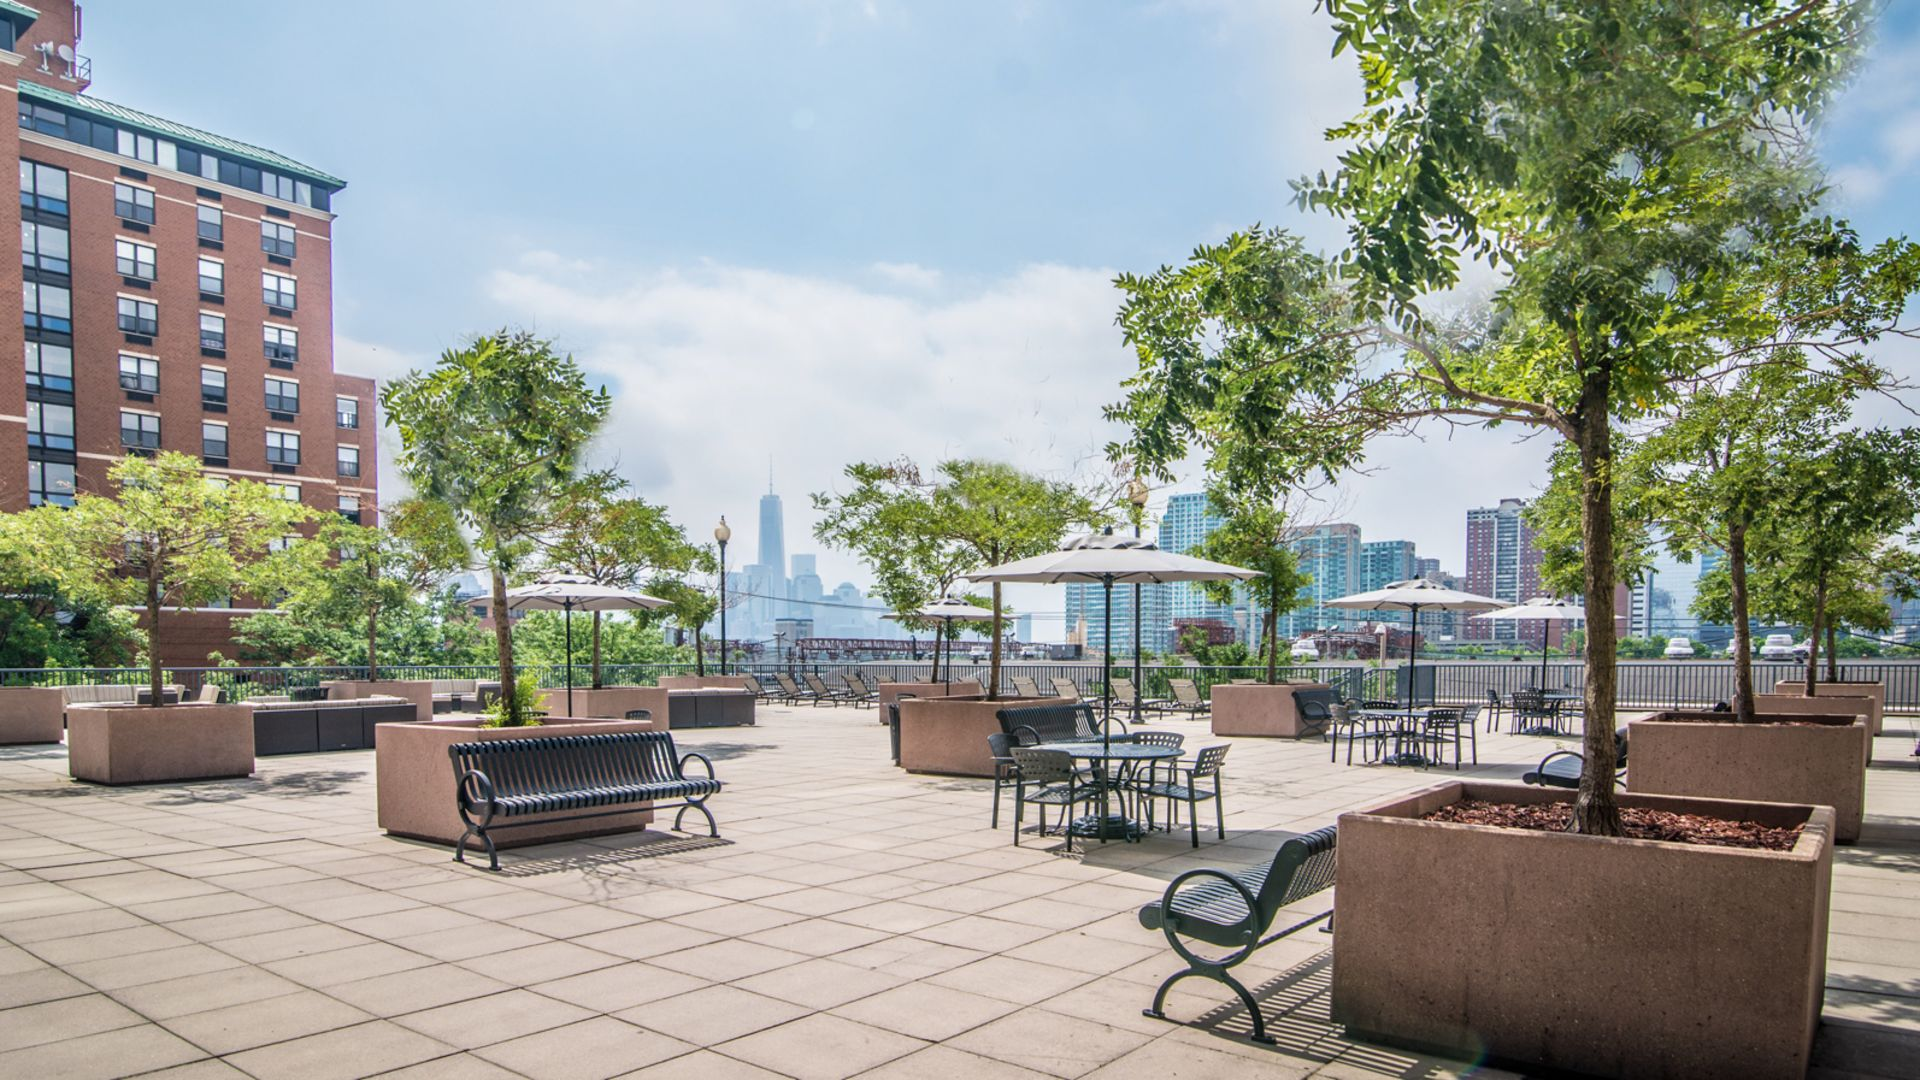 77 Park Avenue Apartments - Deck